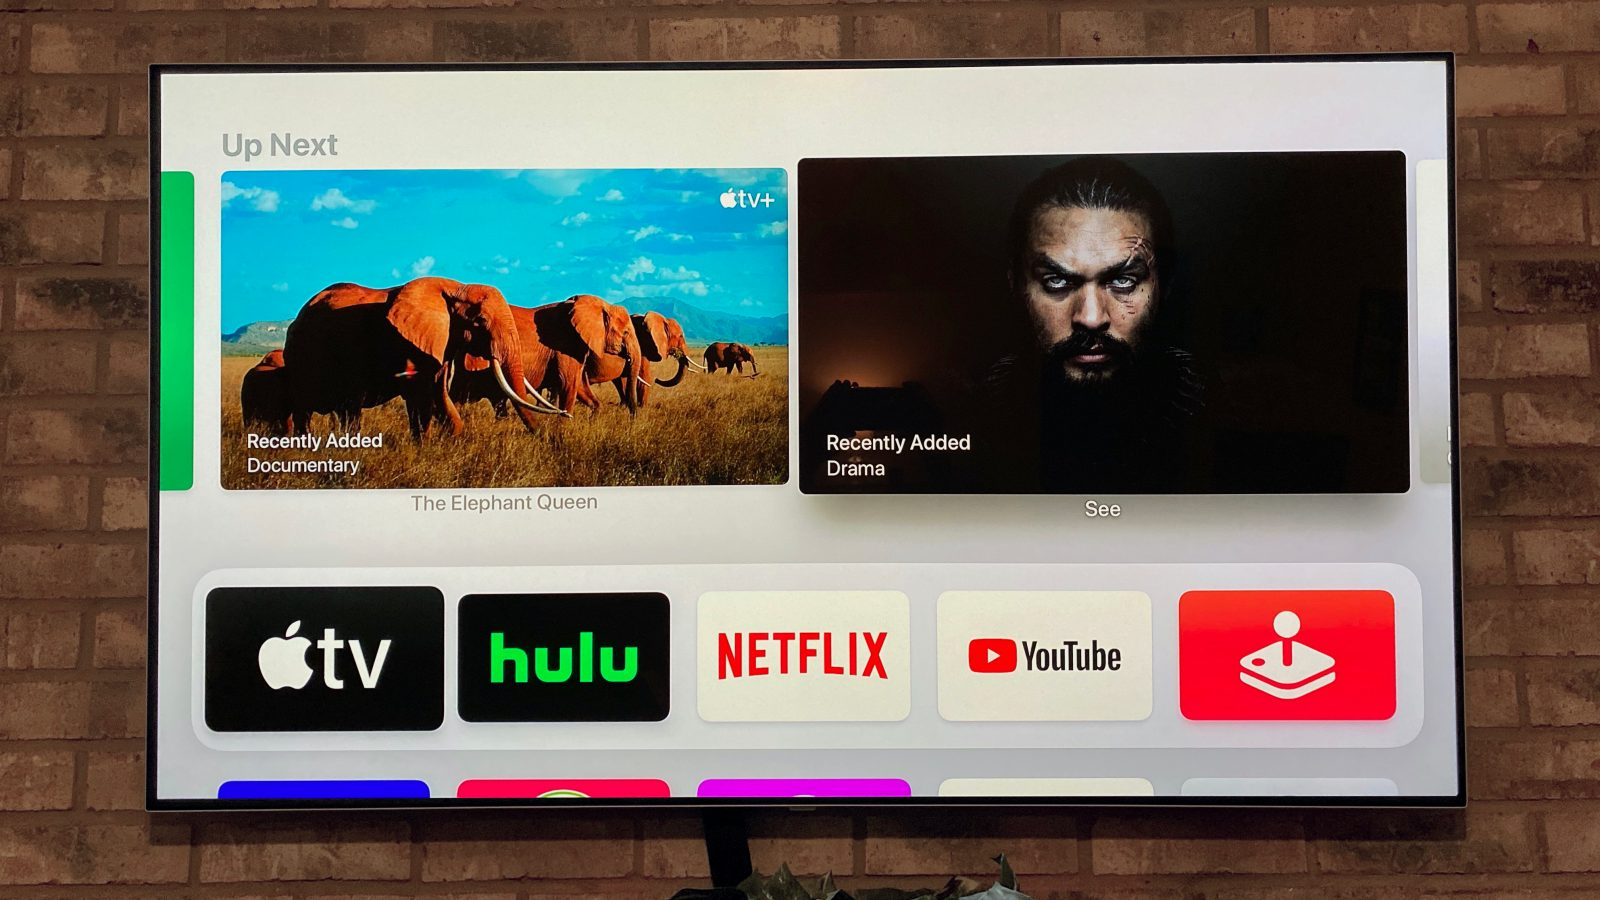 tvOS 13.3 adds setting to put back the Up Next queue on the Apple TV Top Shelf